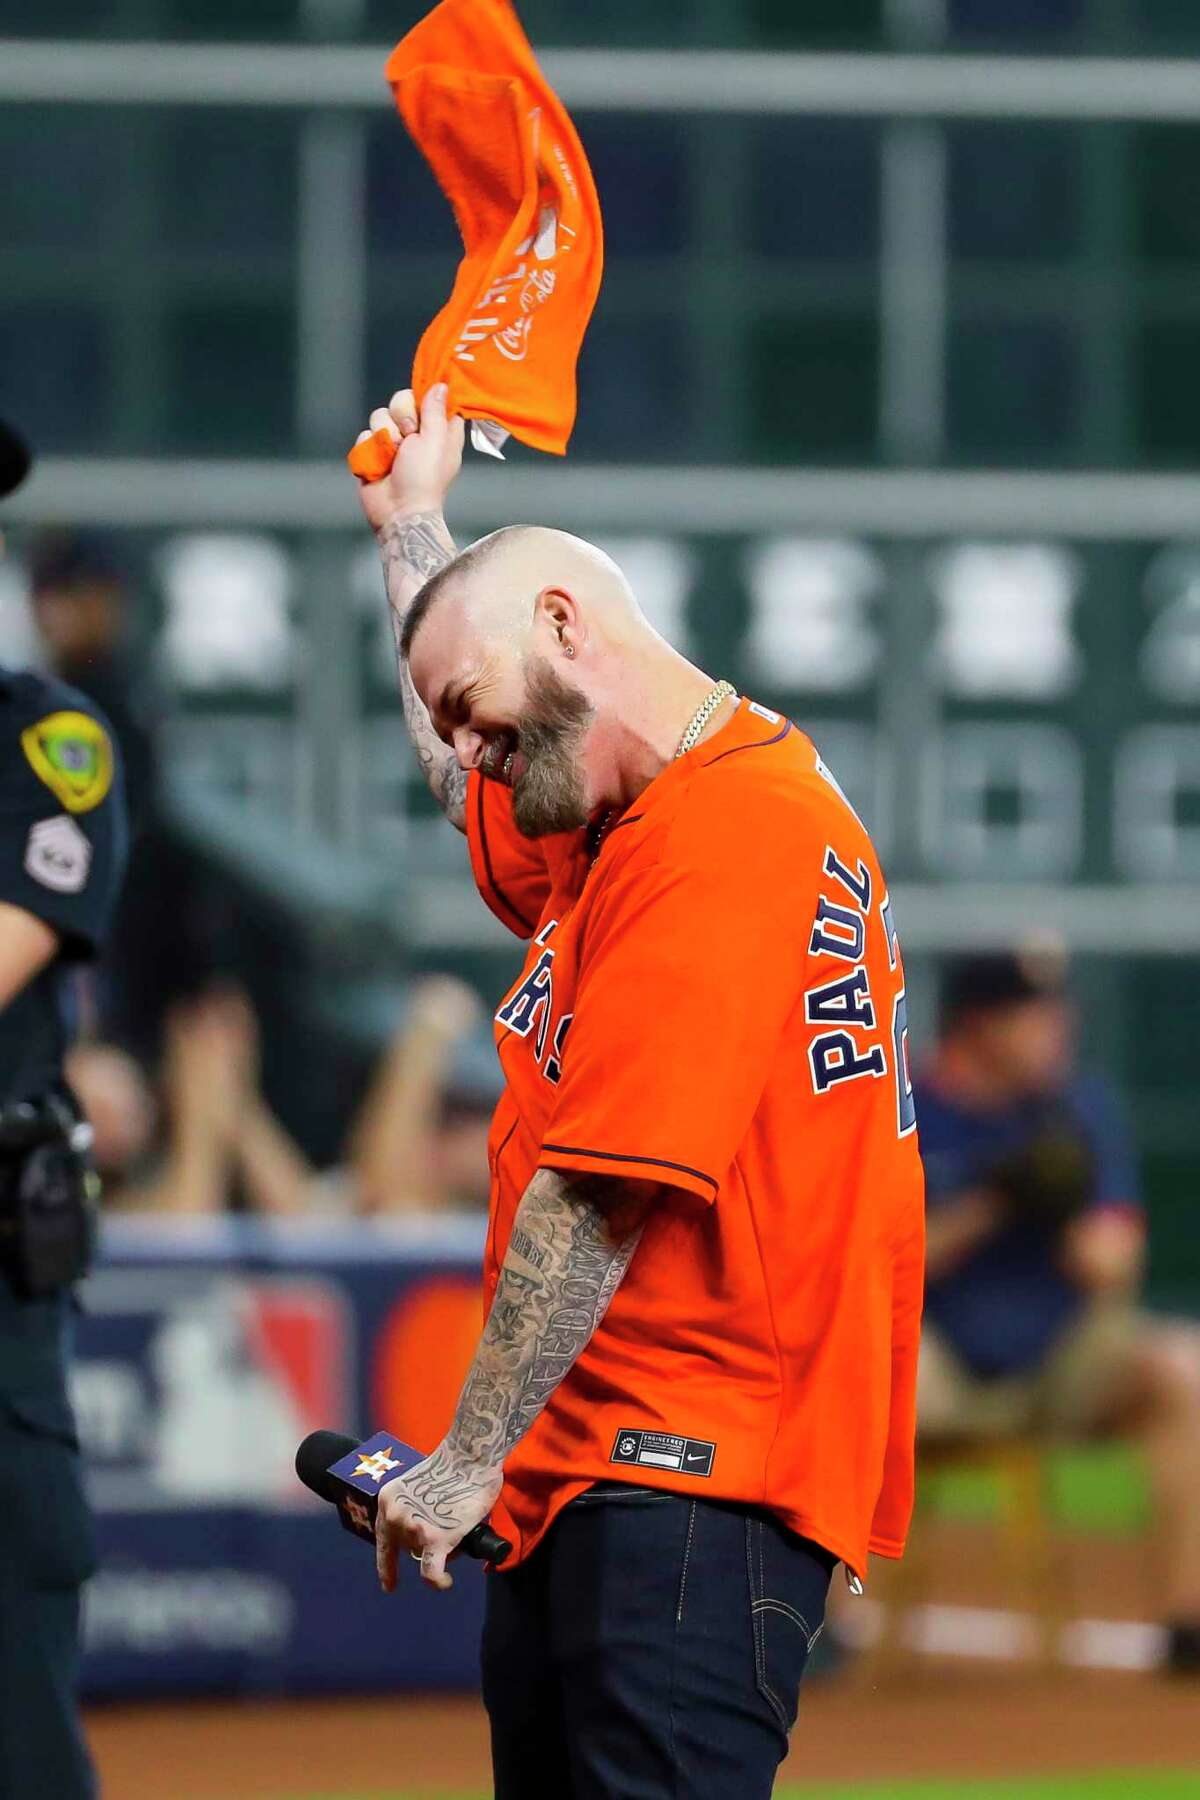 """Paul Wall makes the """"play ball"""" call before Game 2 of the American League Division Series on Friday, Oct. 8, 2021, at Minute Maid Park in Houston."""